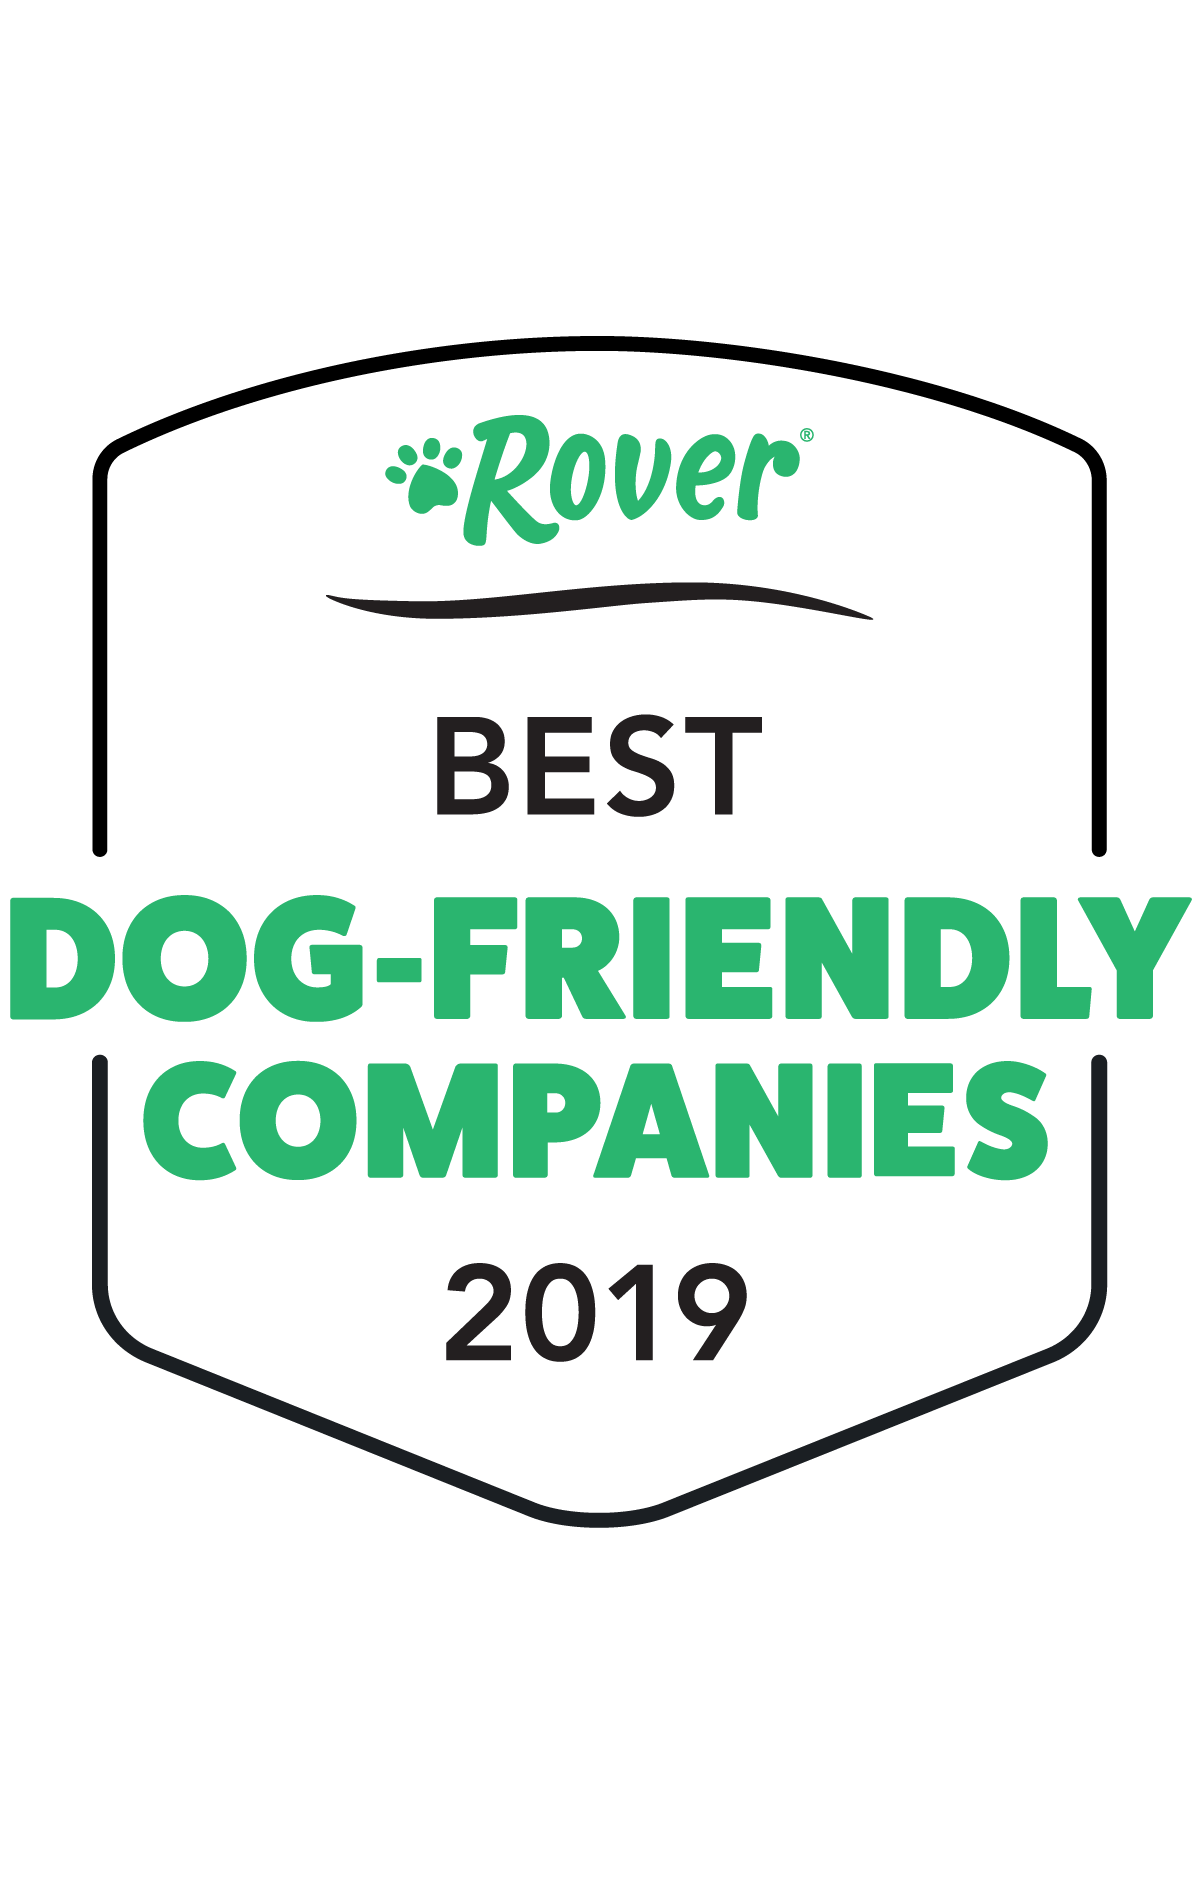 Rover - Best Dog-Friendly Companies